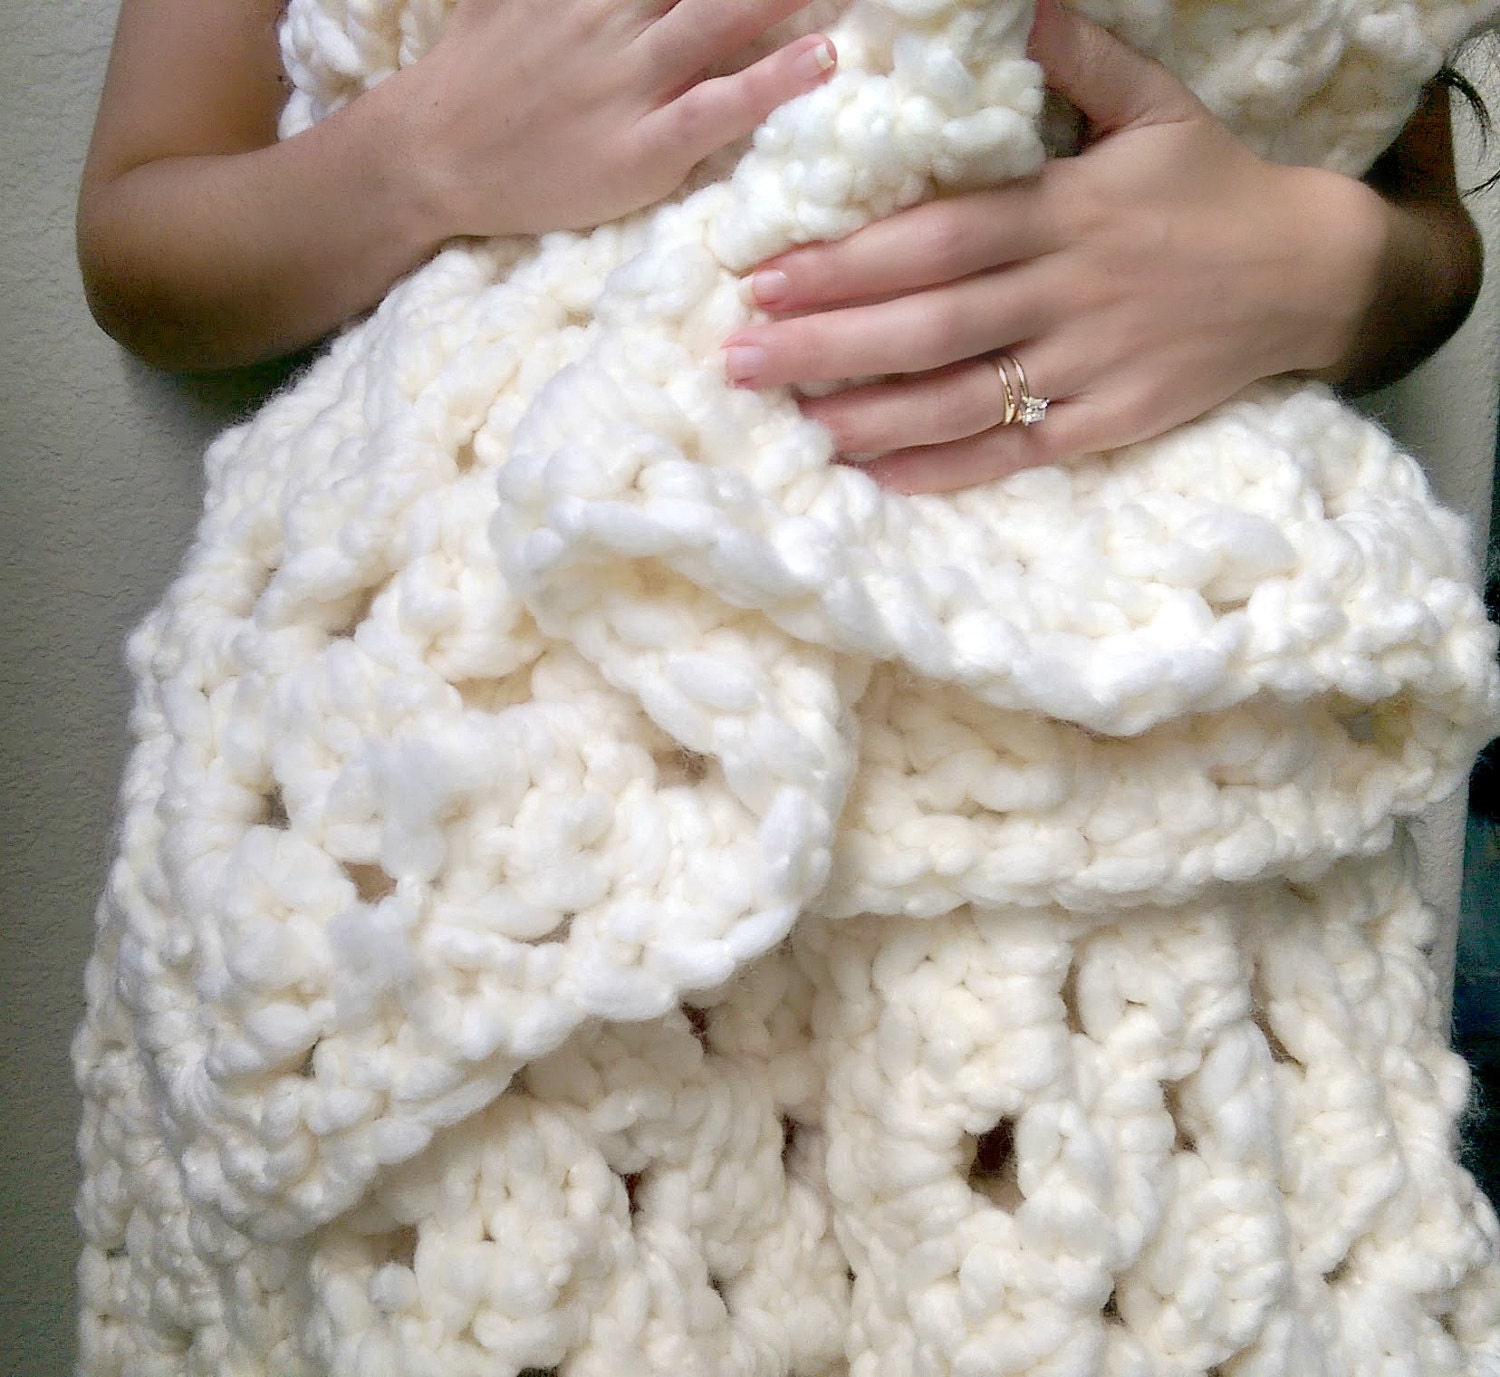 Knit Blanket Pattern Super Bulky : Chunky Wool Blanket Super Bulky Granny Square by TheSnugglery